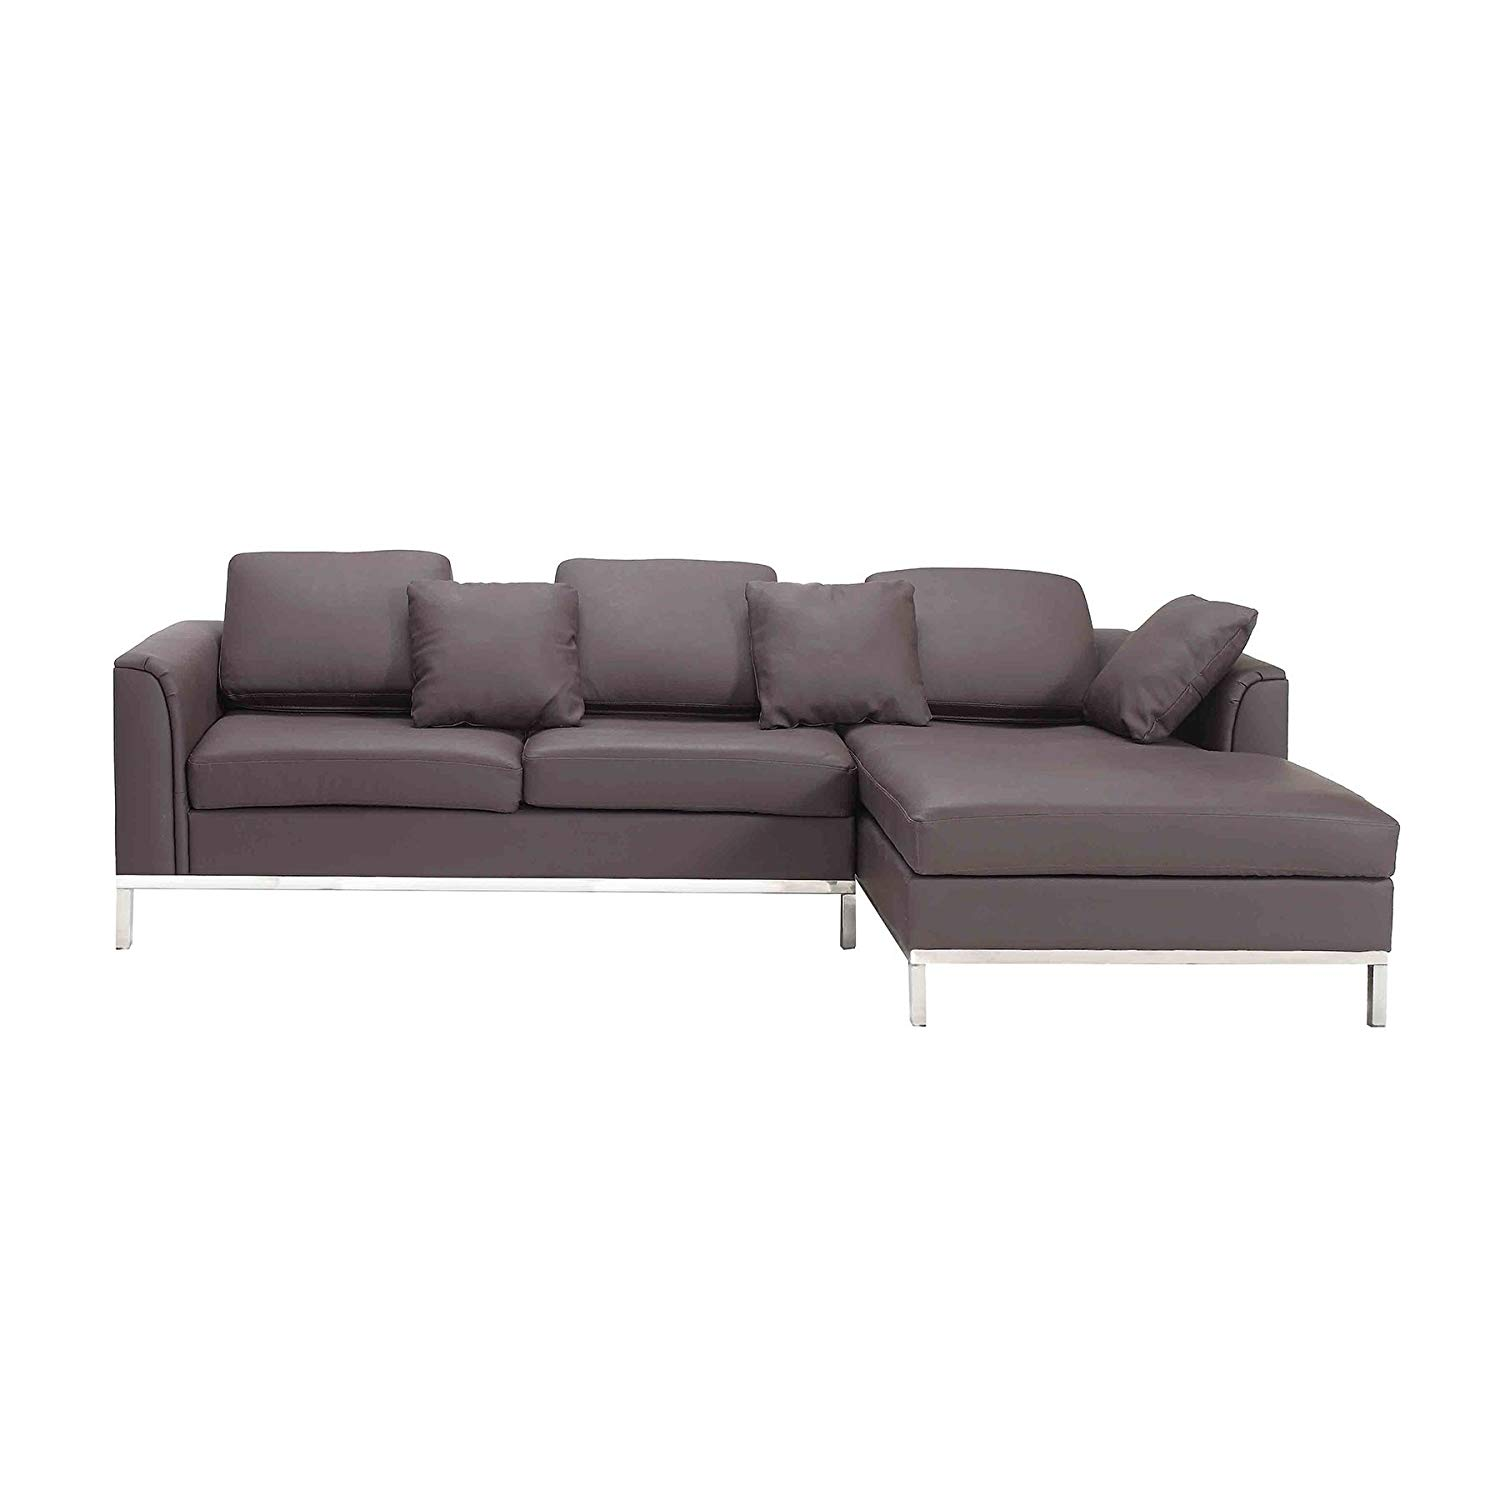 Beliani Modern Brown Leather Couch Sectional Sofa Left Facing Oslo